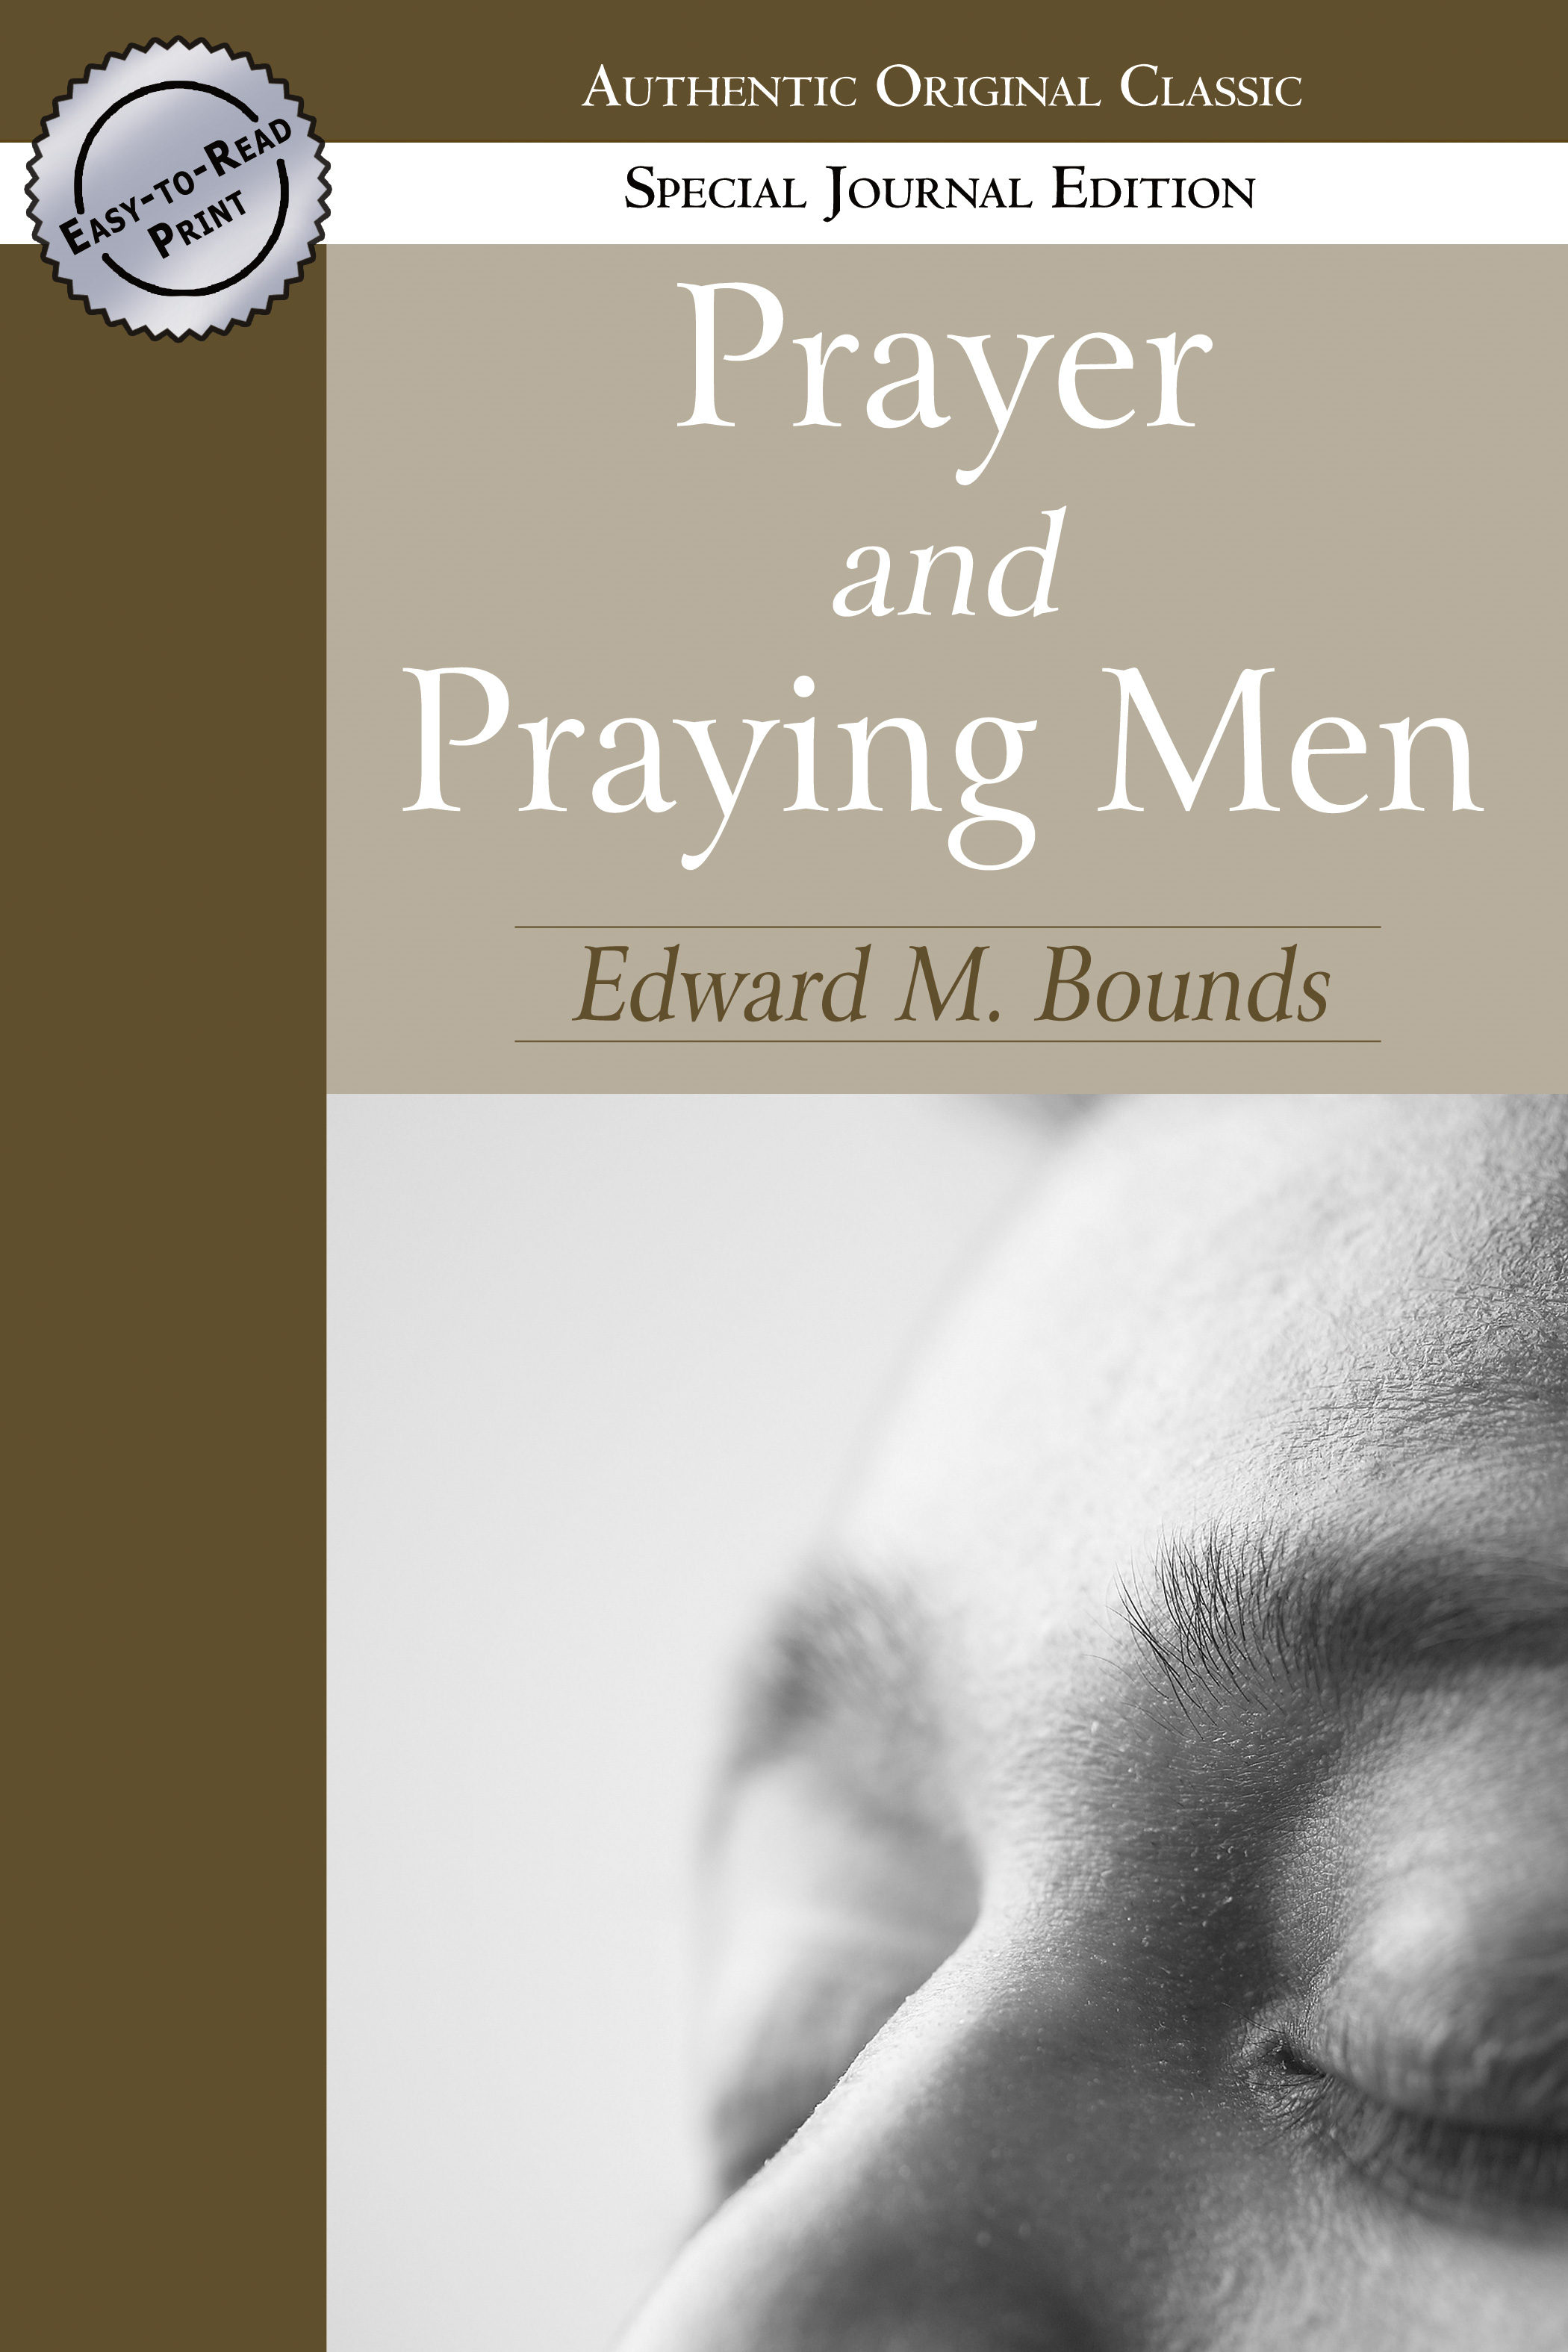 Prayer and Praying Men (Authentic Original Classic)